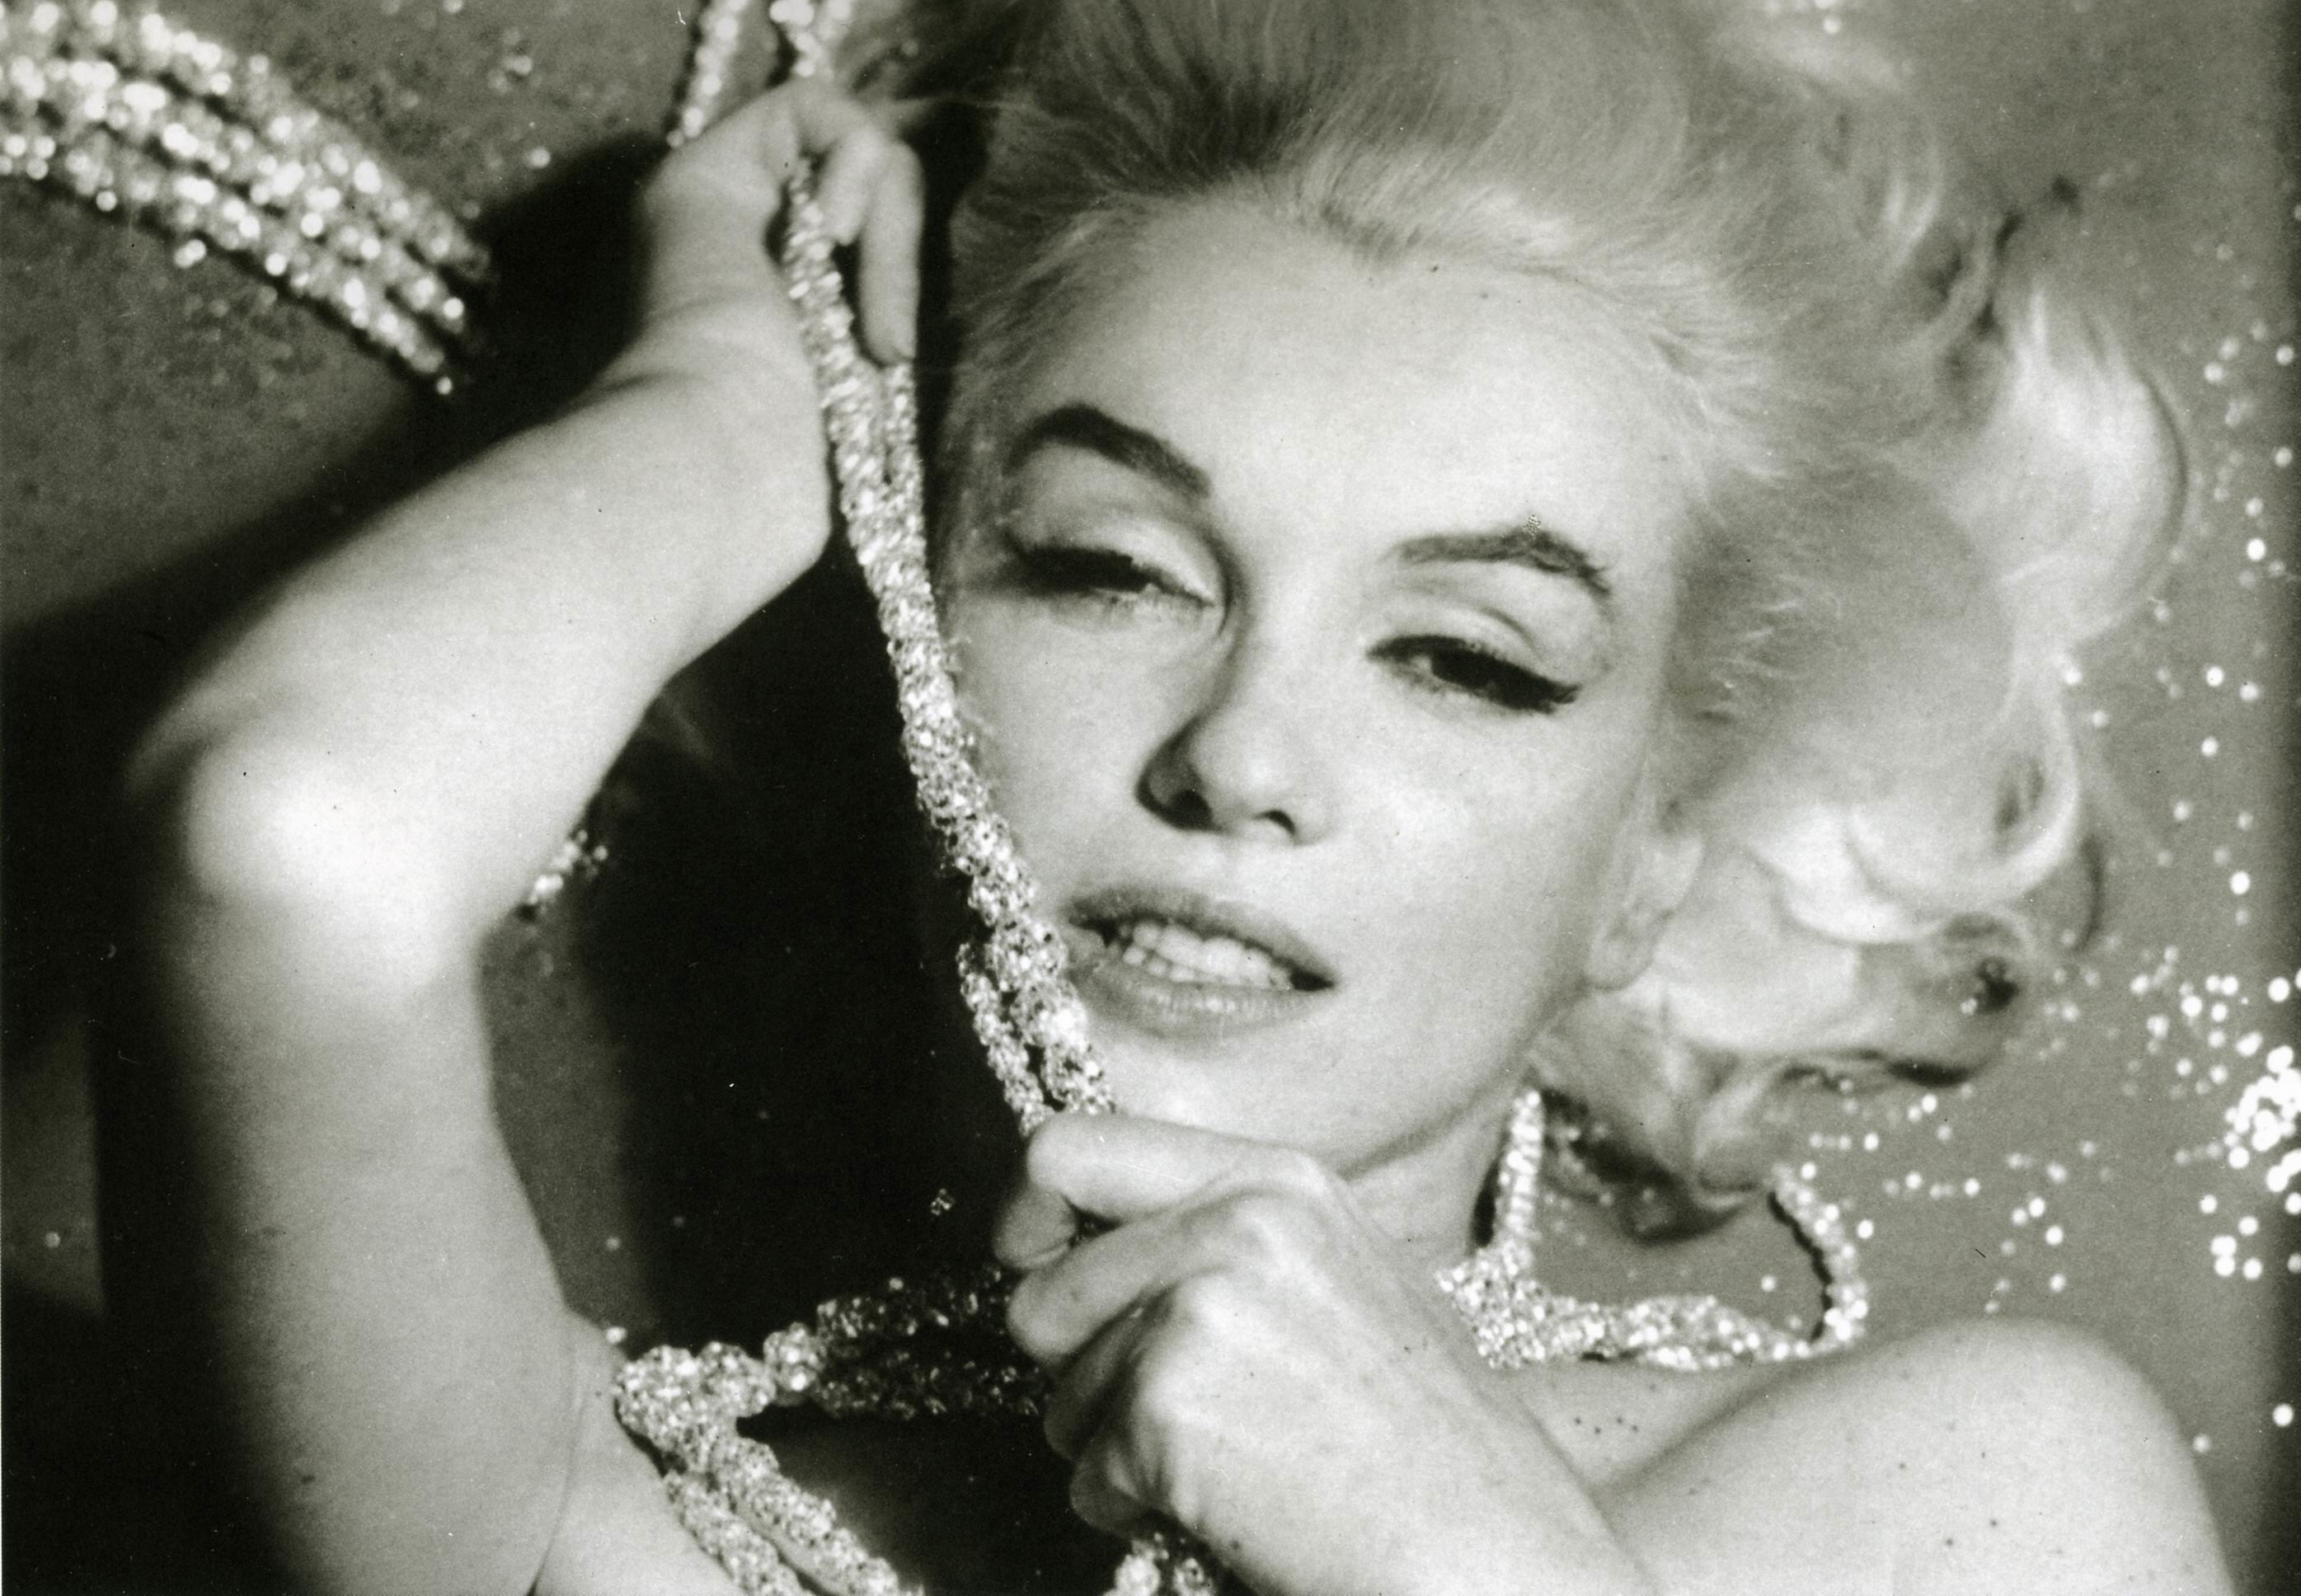 Marilyn monroe wallpapers 72 images 1920x1200 marilyn monroe image hd background wallpapers free amazing tablet smart phone 4k high definition 19201200 wallpaper hd voltagebd Choice Image